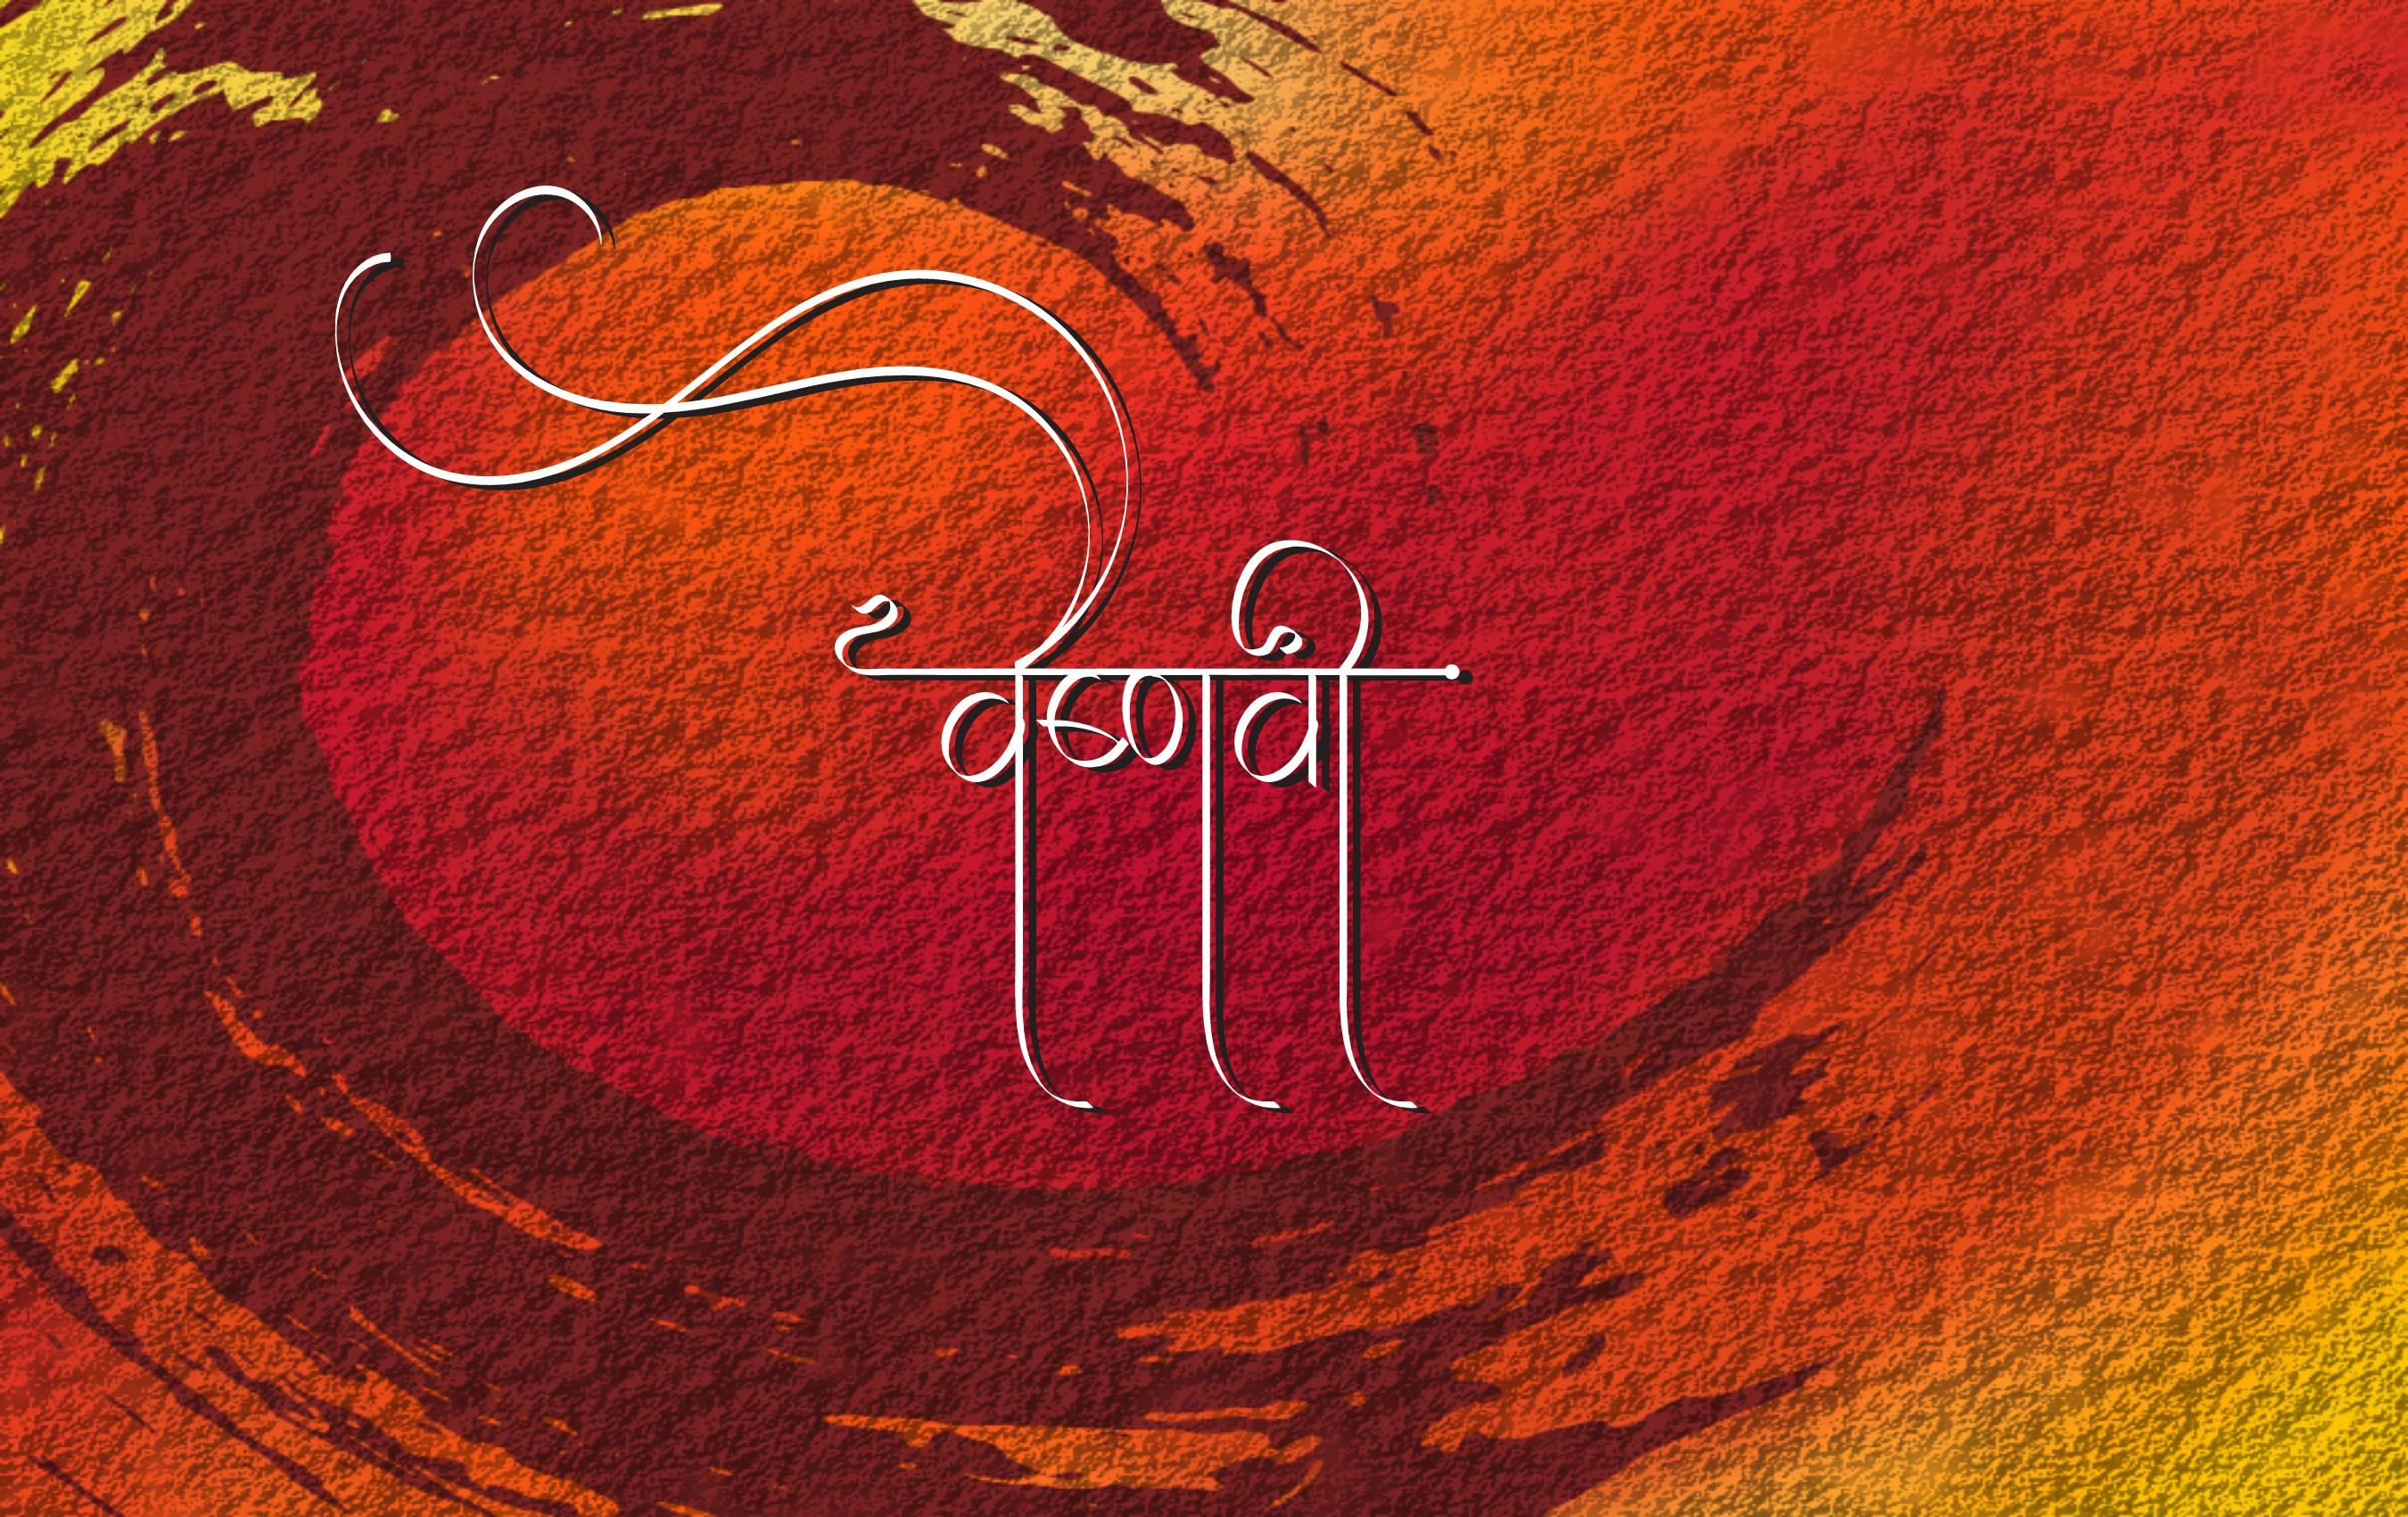 Pin by Pravin Jadhav on Marathi And Hindi Calligraphy